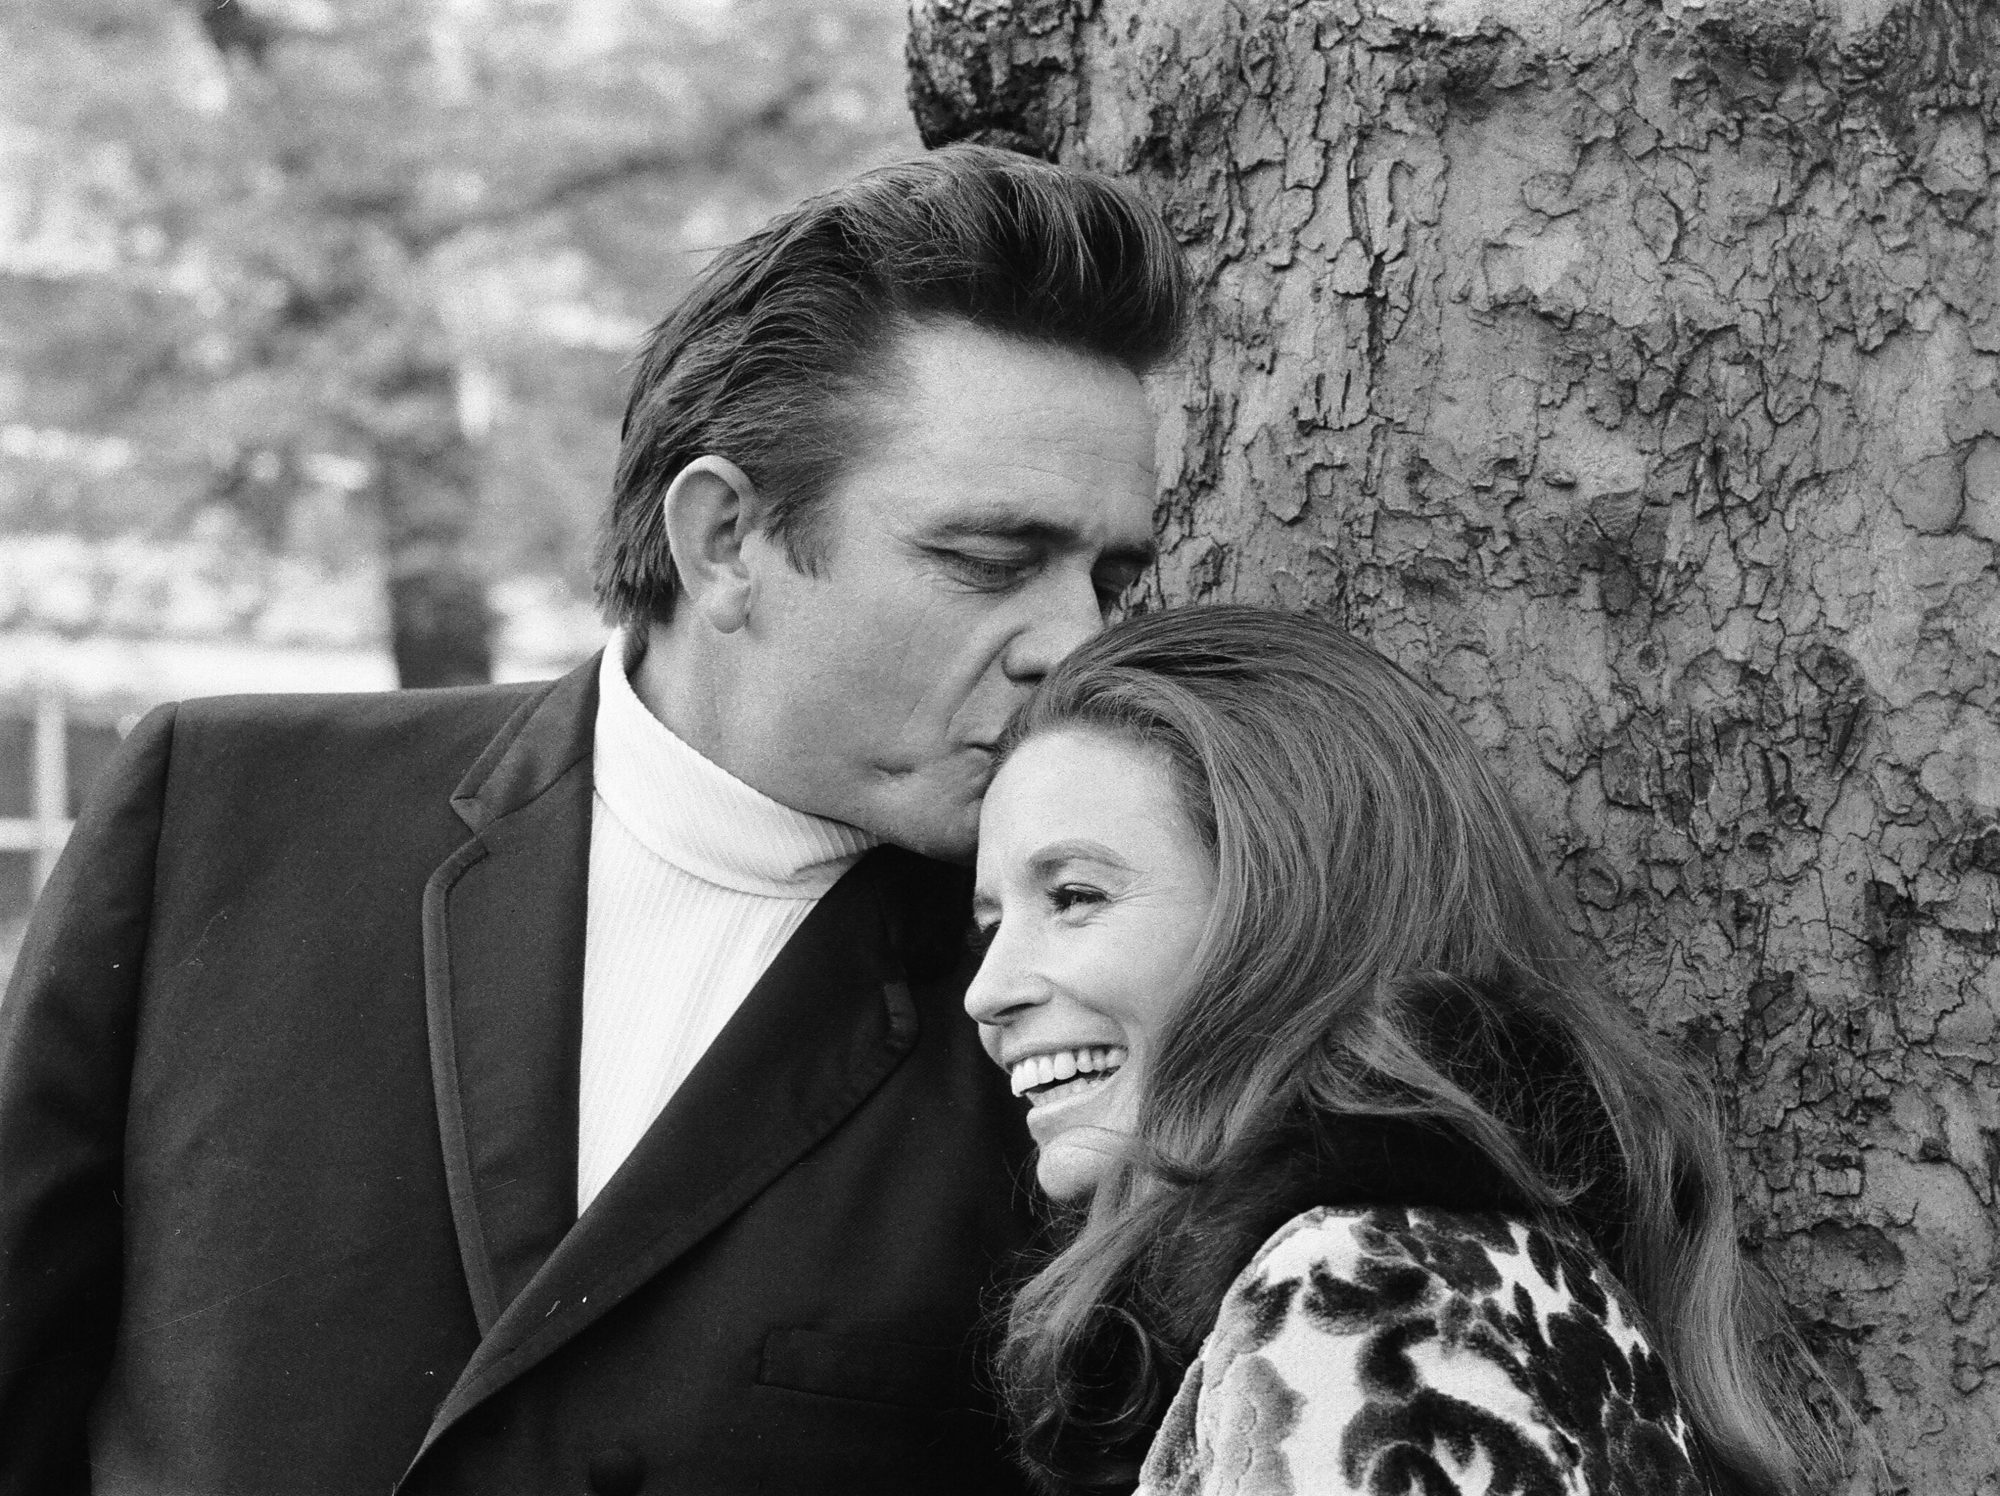 June Carter Cash and Johnny Cash